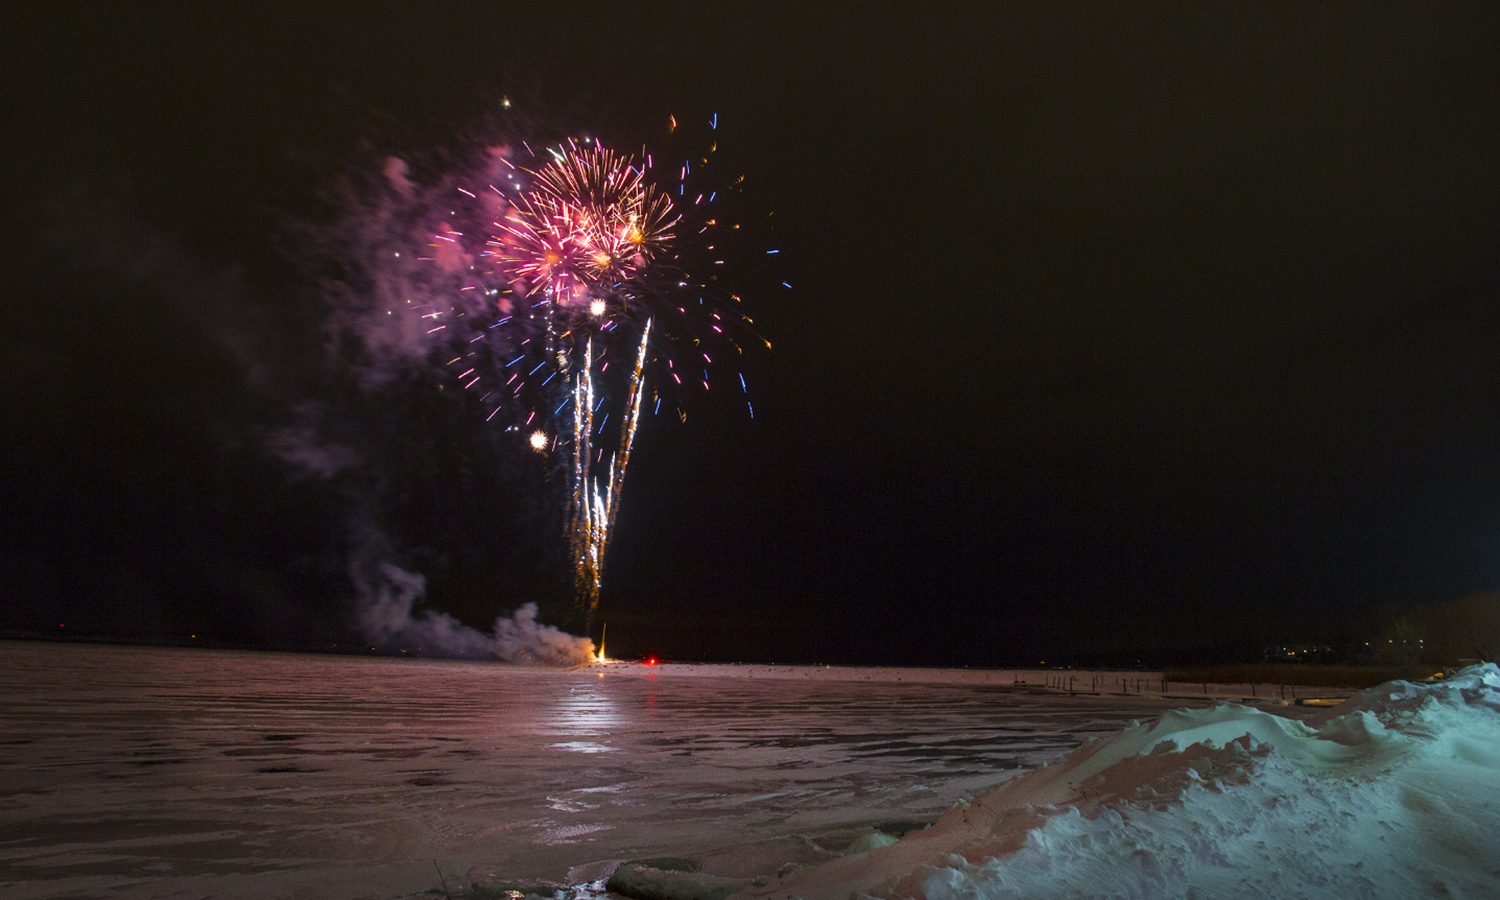 Fireworks burst in the air over Long Pier in Geneva during a winter celebration.